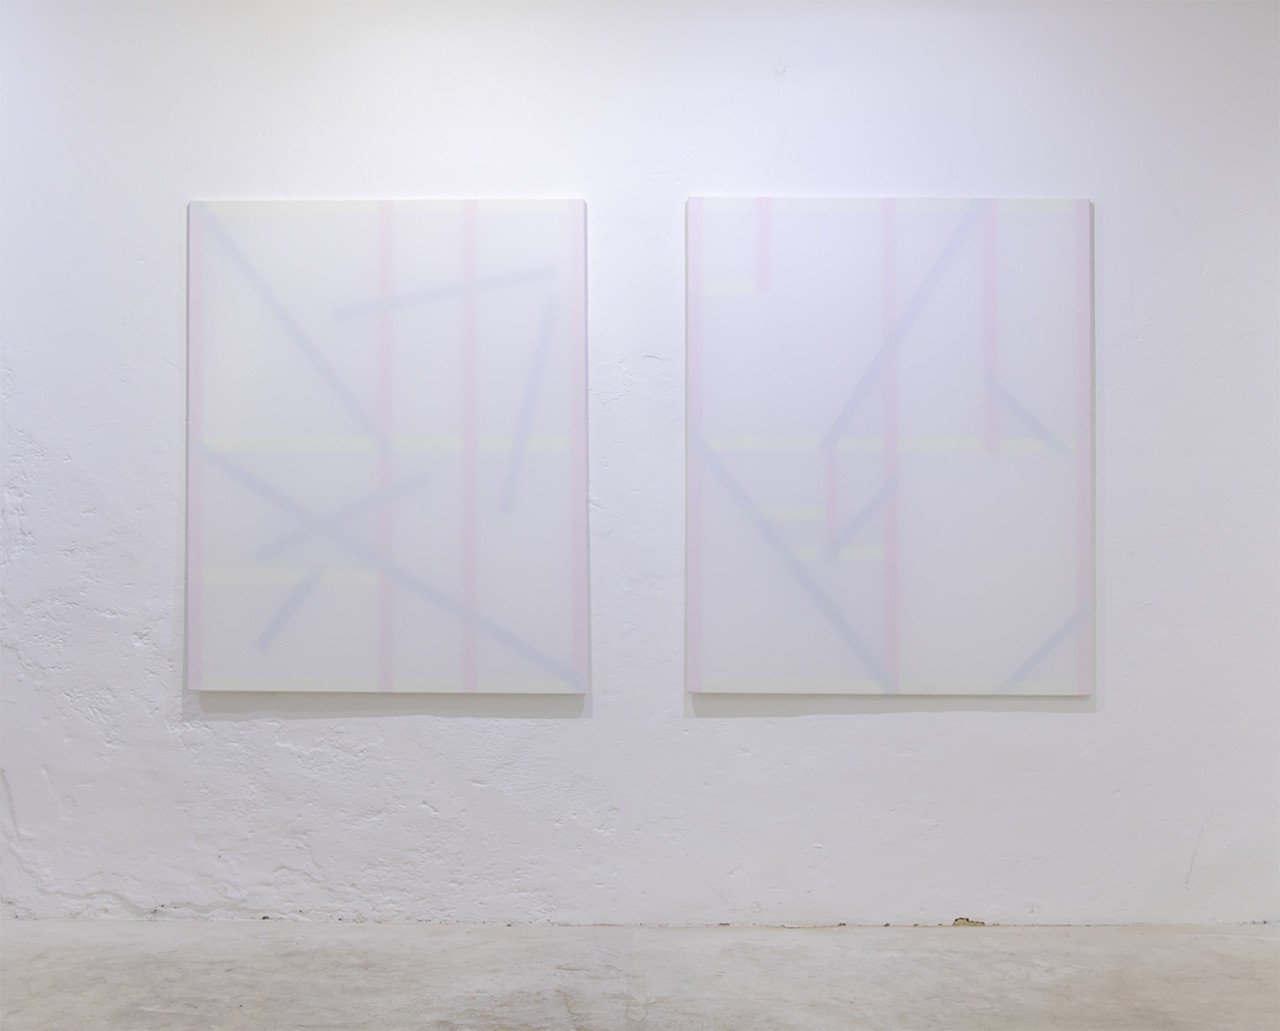 Untitled (to), Installation view at LisaBird Contemporary, Vienna (AT), 2016, Untitled (to I.K.), Acrylic on stretchers behind cotton 150 cm x 120 cm each, 2016